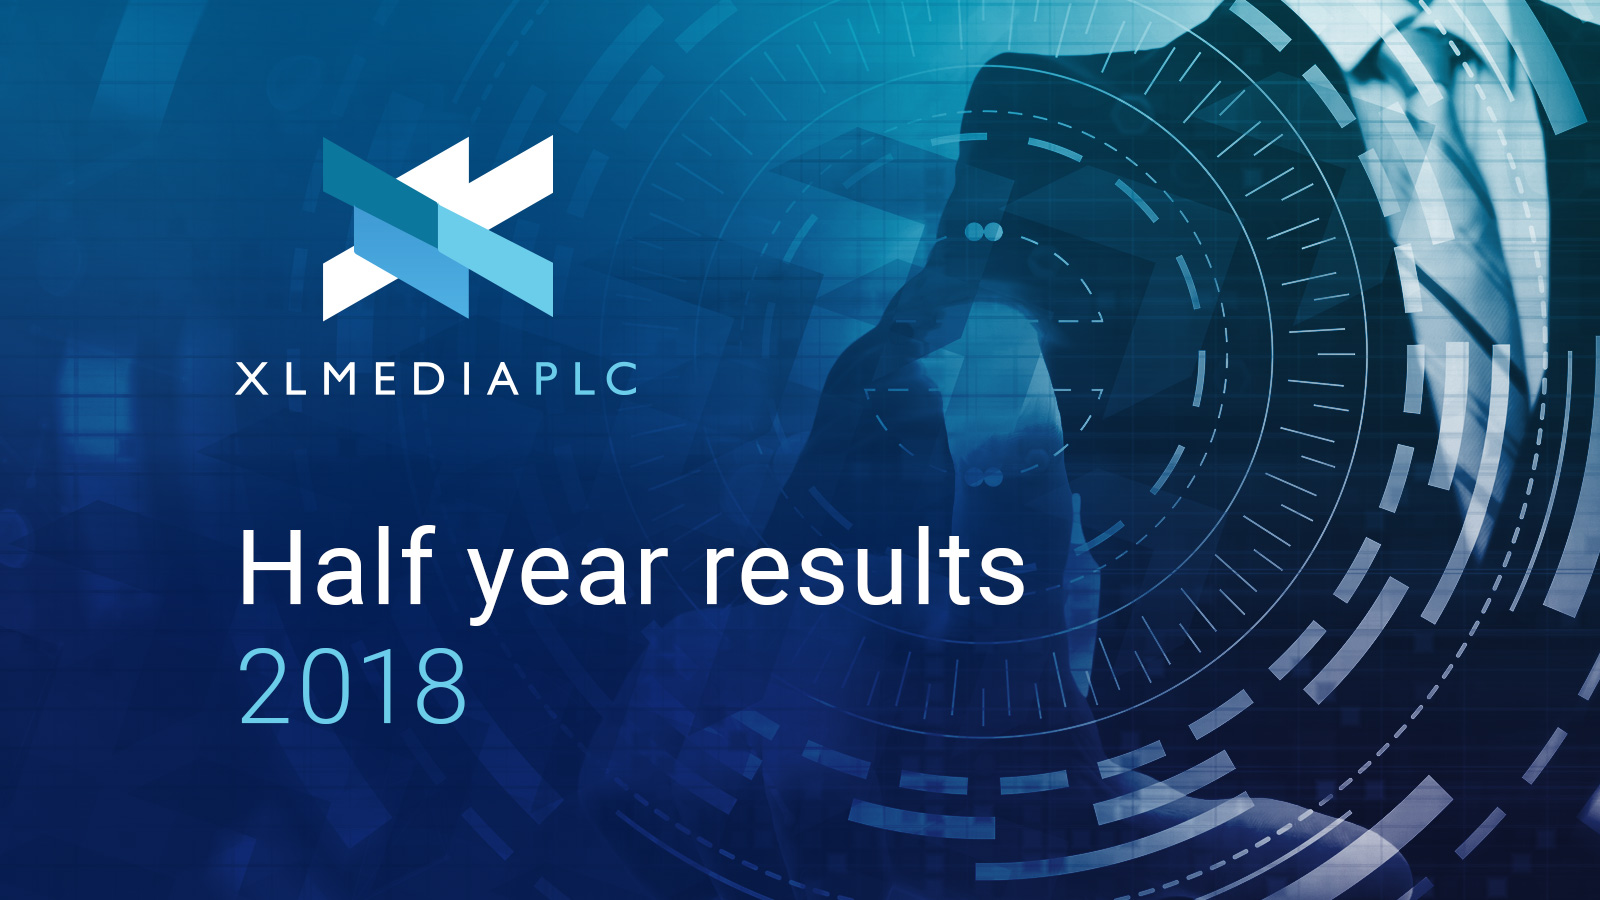 BRR webcast 2018 Half Year results